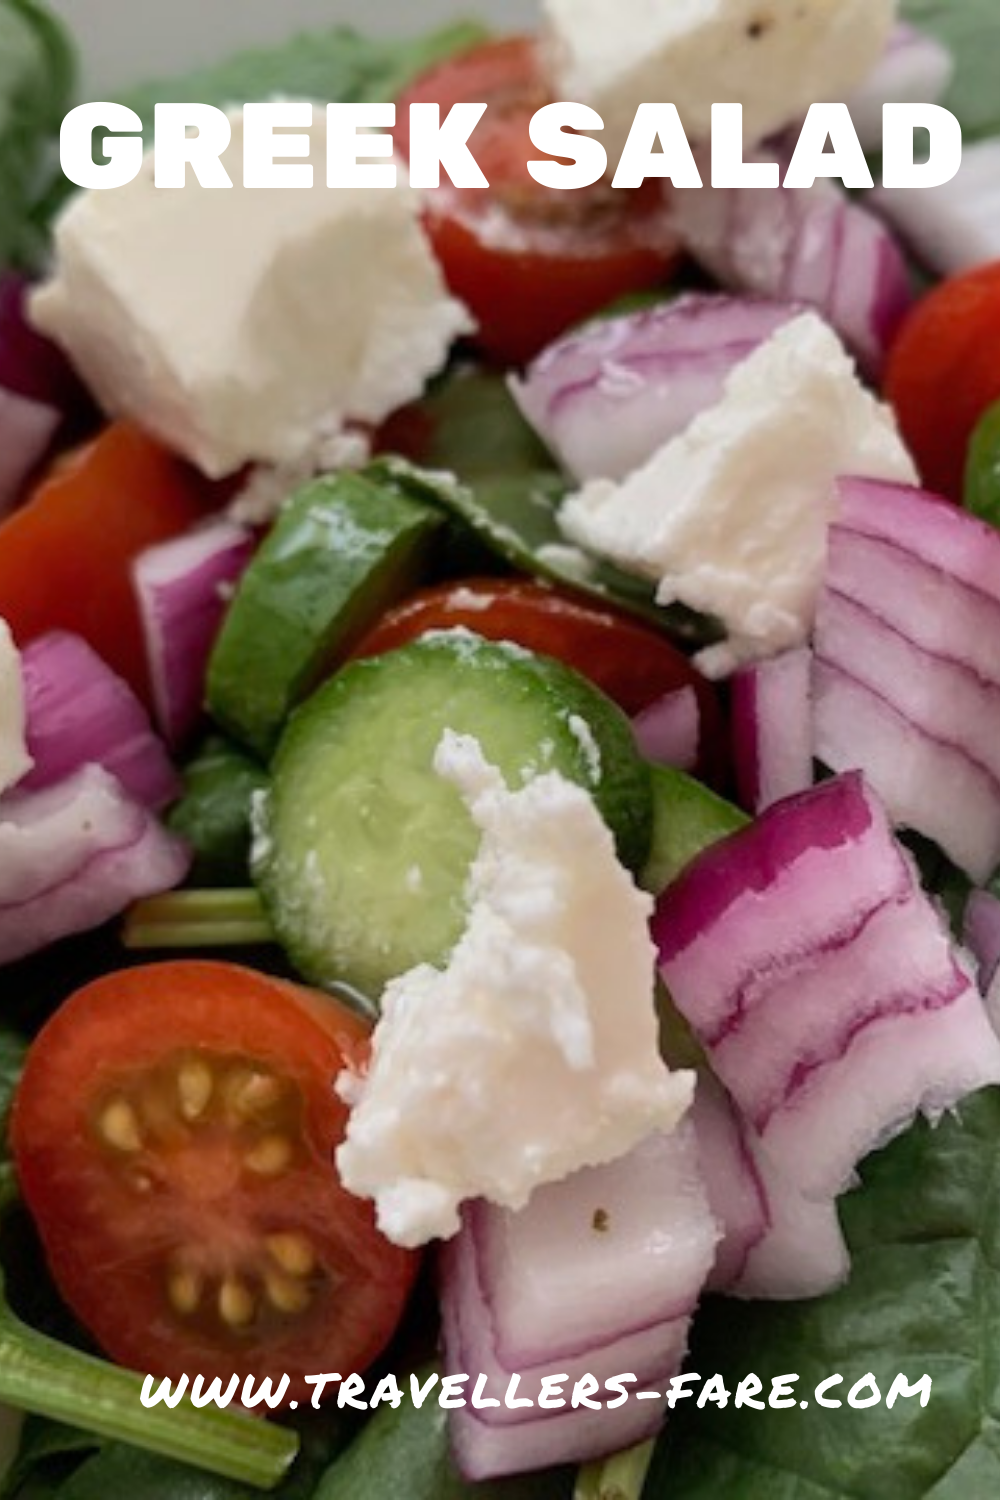 Greek Salad With Lettuce, Tomato, Red Onion, Cucumber and Feta.